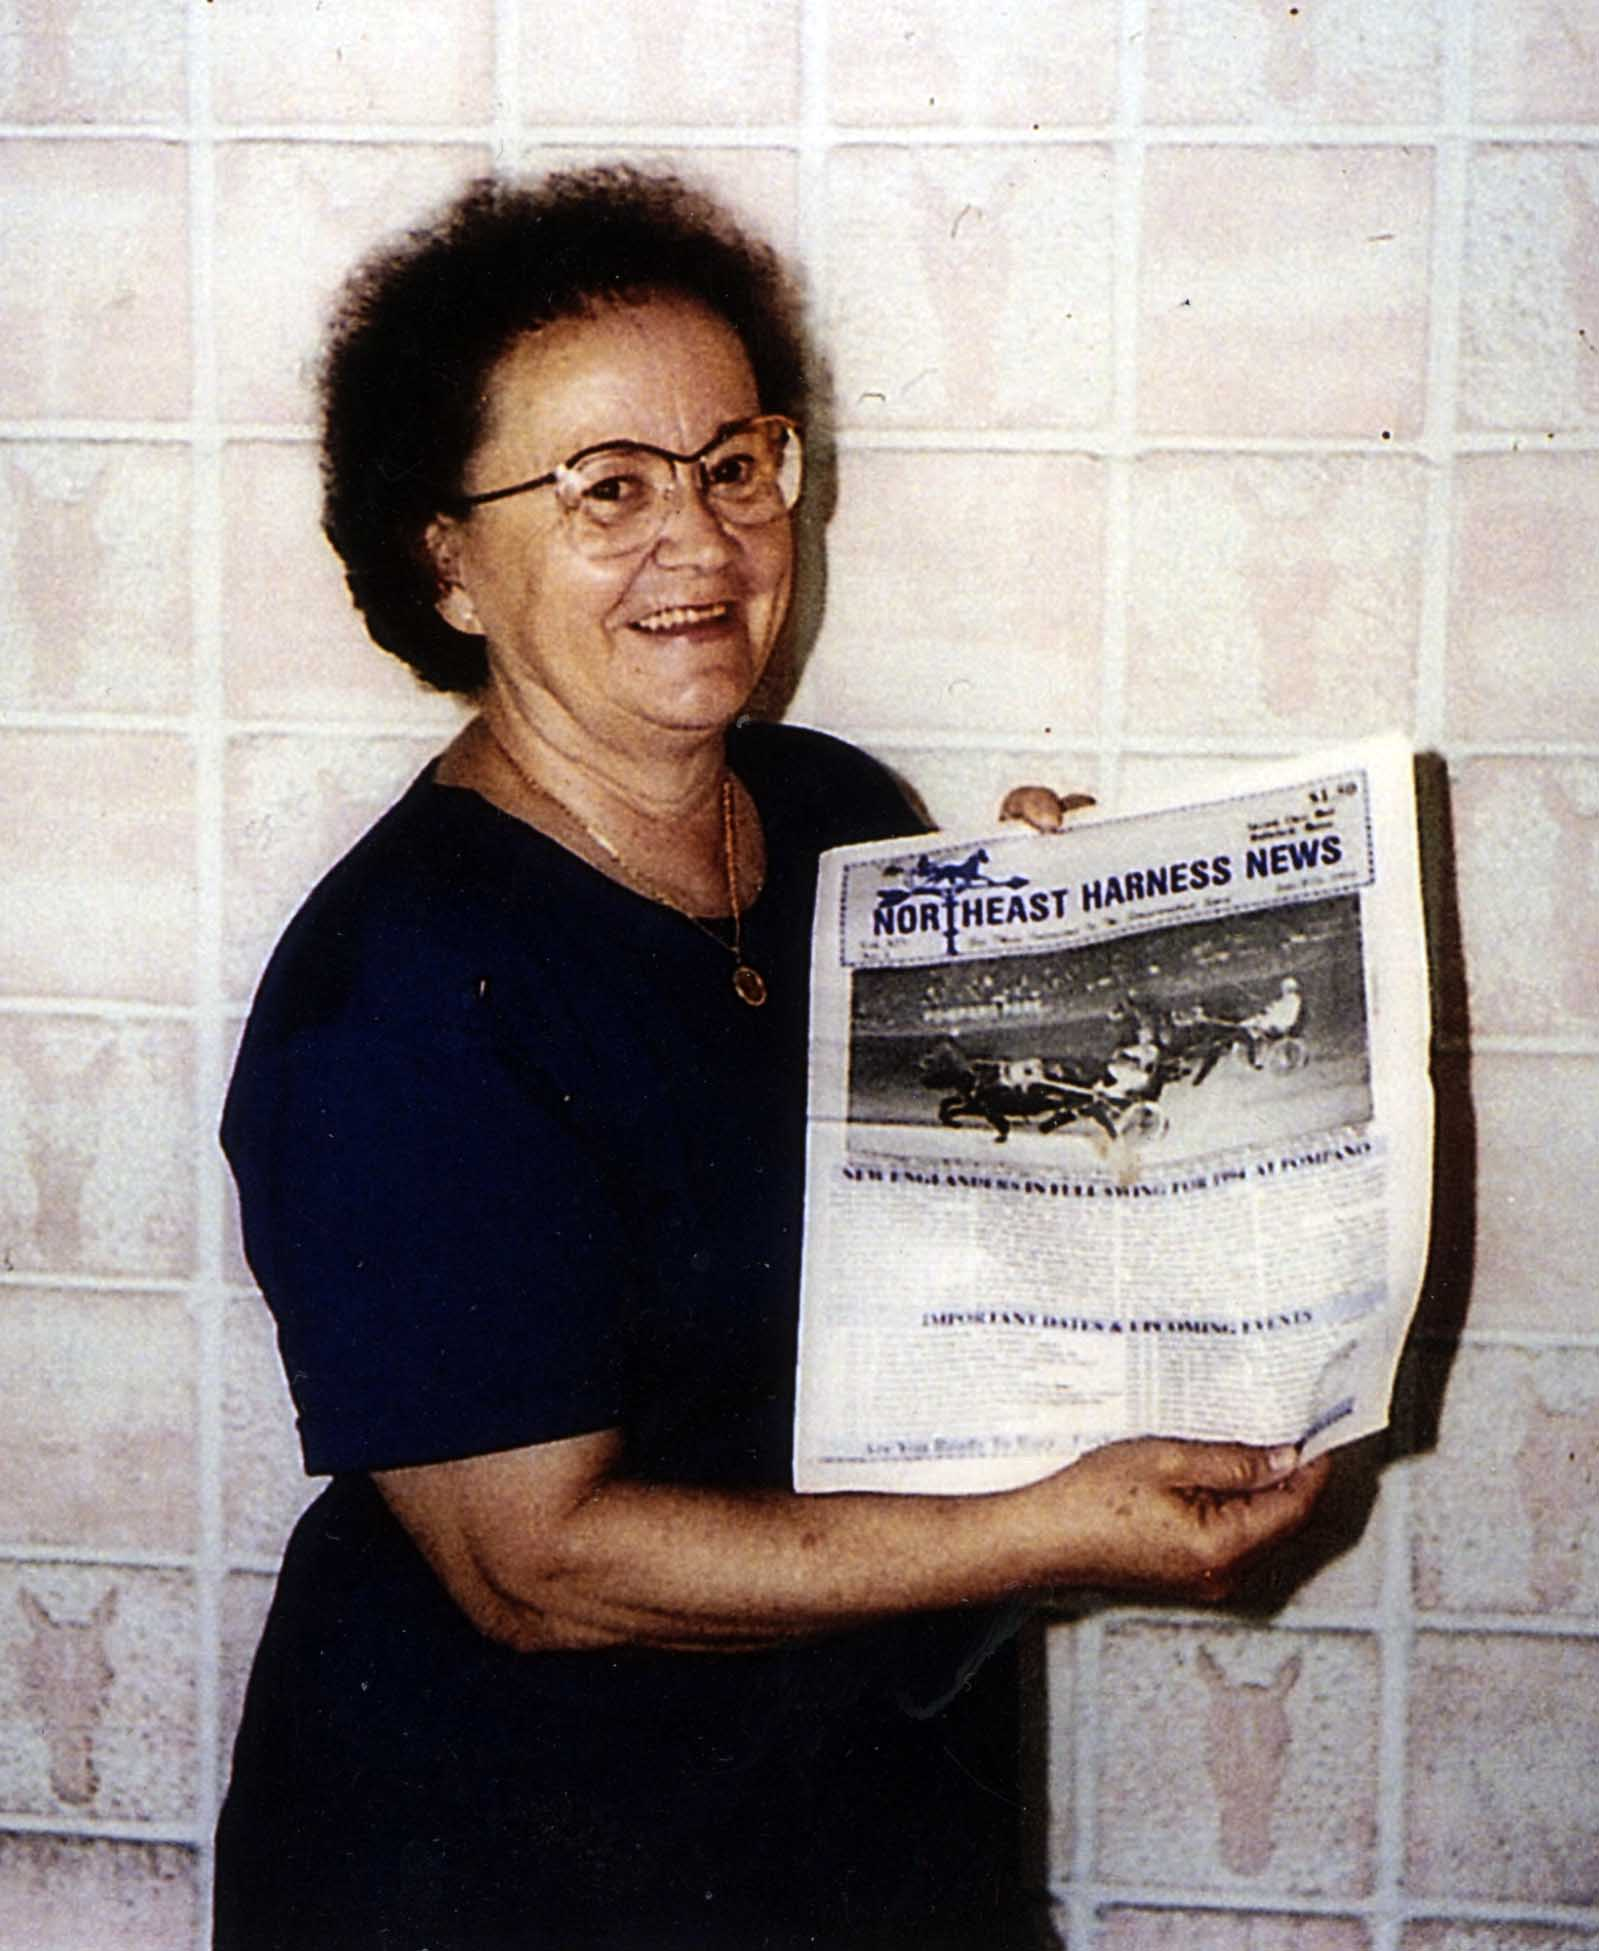 Digital Maine Brings Jean Emerson's Northeast Harness News to the Internet — All Issues from 1980 to 1995